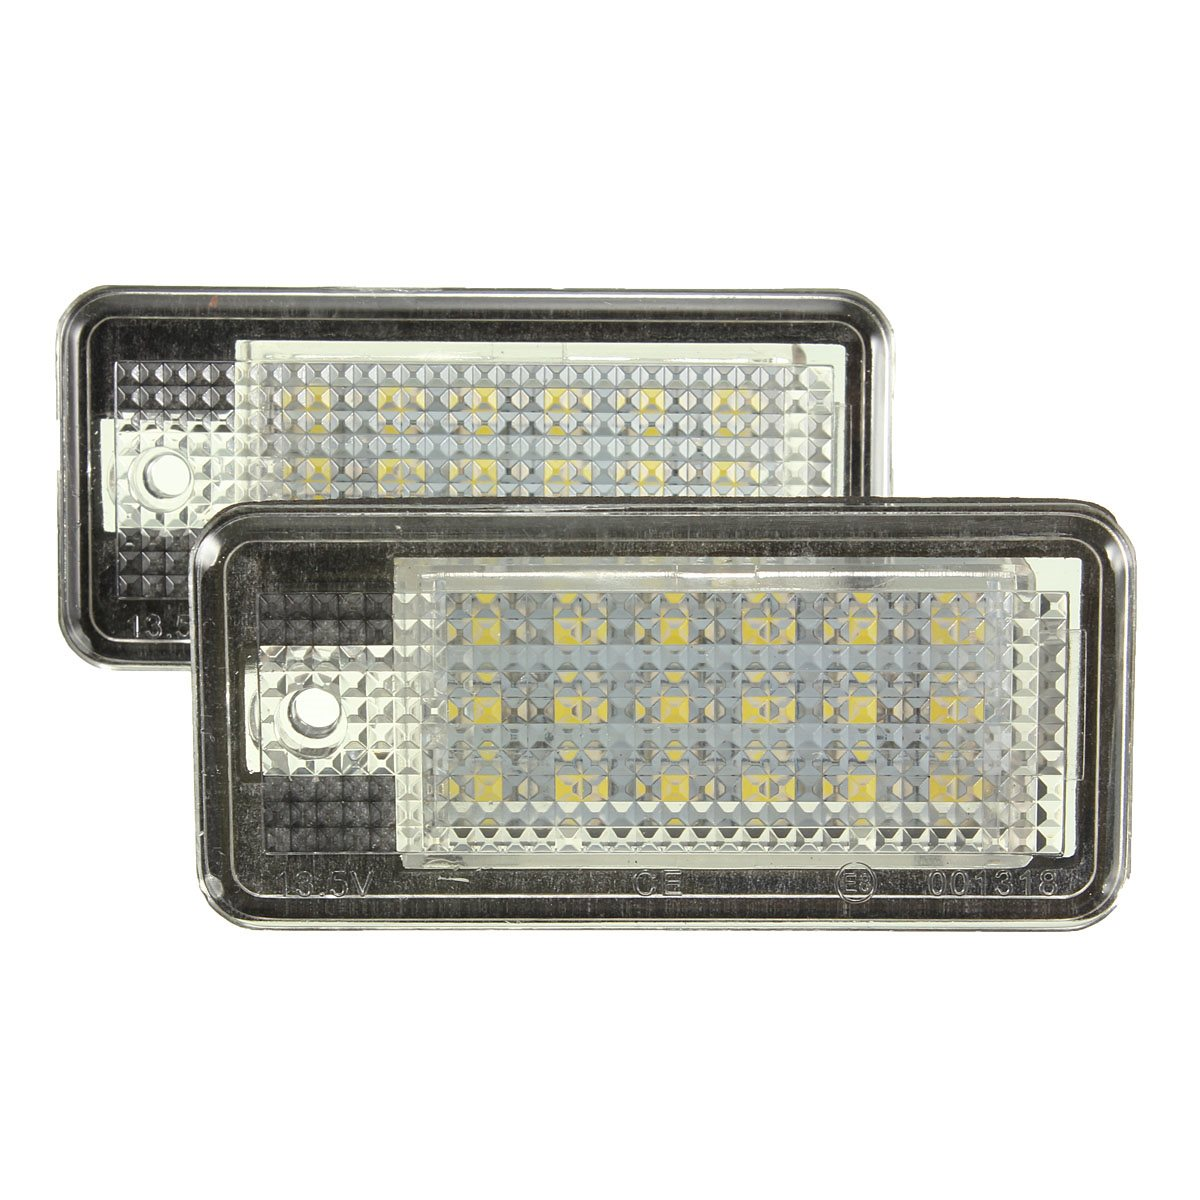 New 2 White Car Error 18 LED License Number Plate Light Lamp For Audi A3 S3 A4 S4 B6 B7 A6 S6 A8 Q7